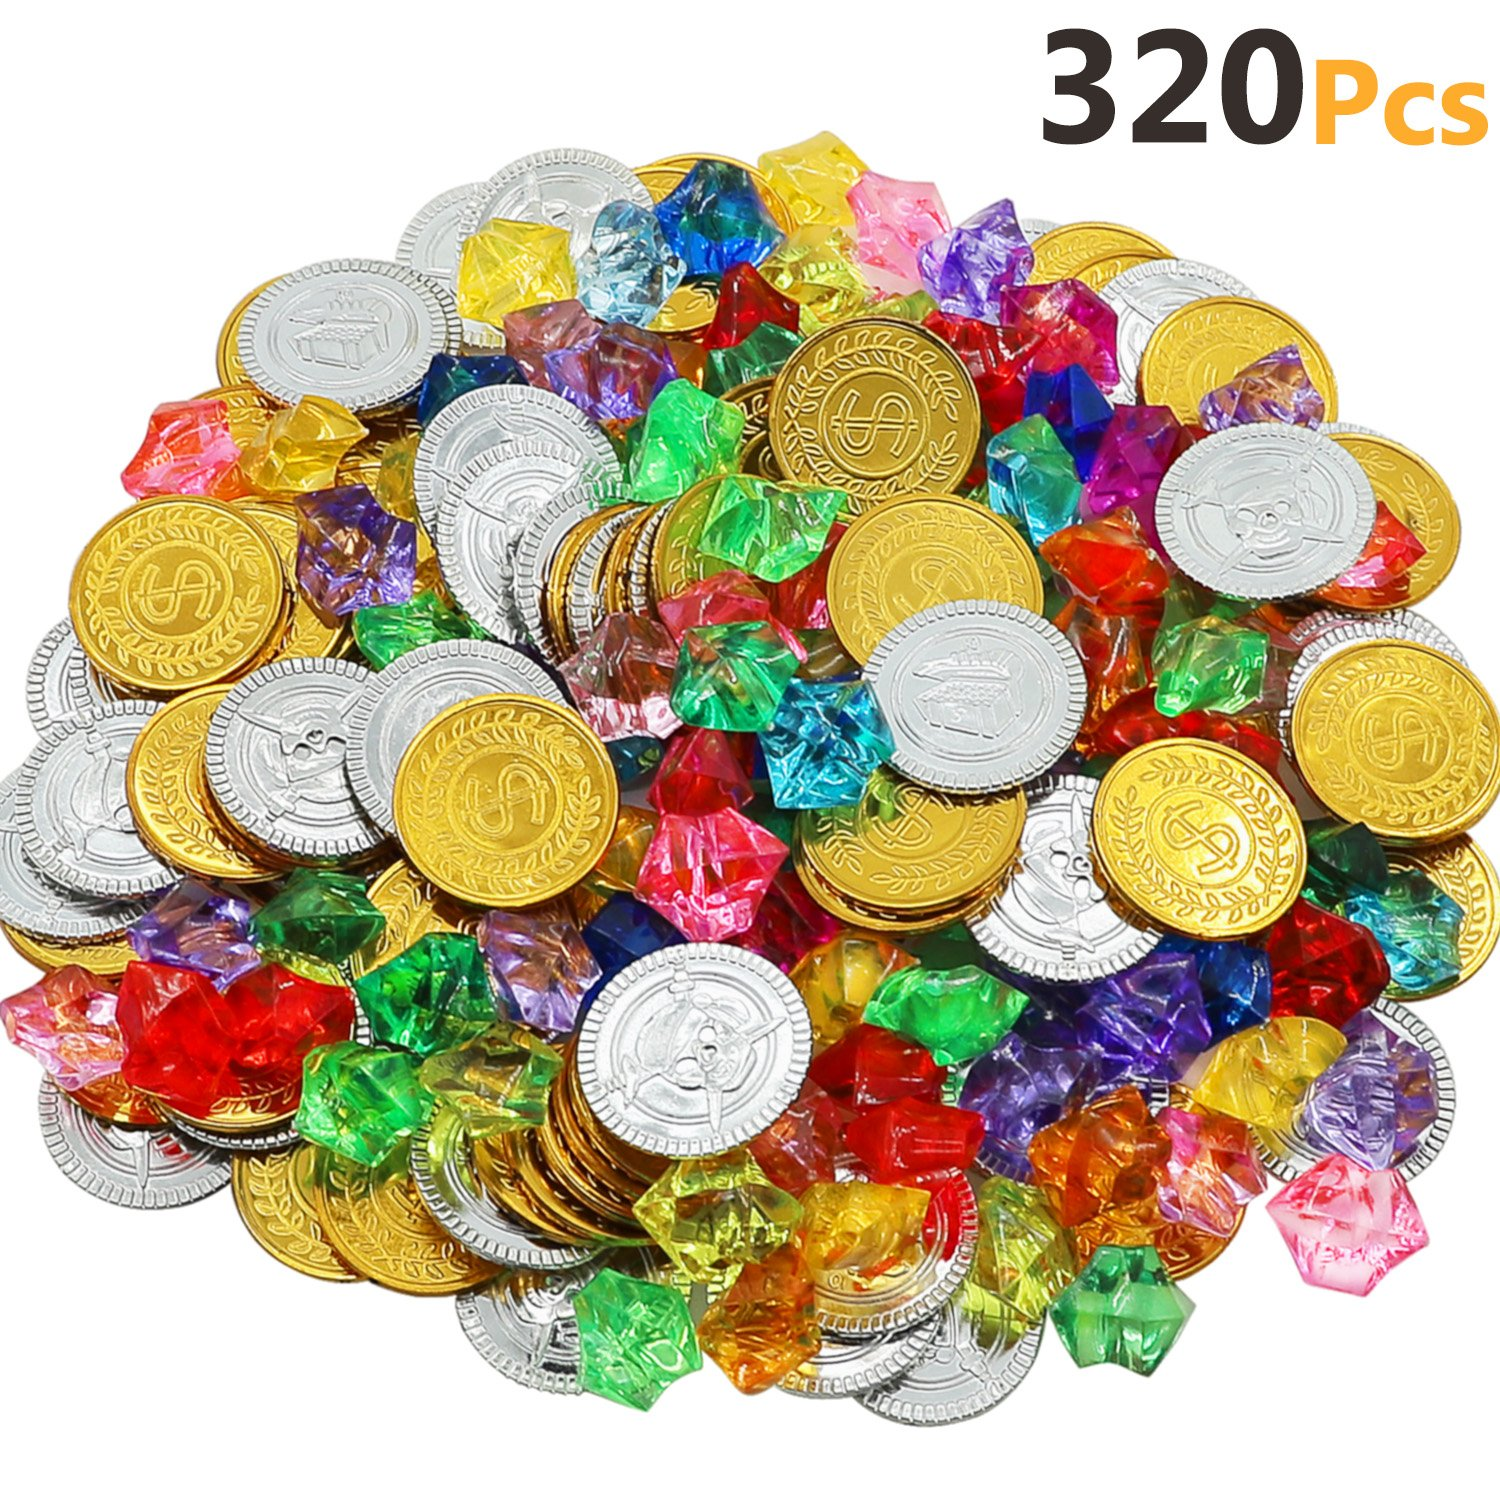 HEHALI 320 Pieces Pirate Toys Gold Coins and Pirate Gems Jewelery Playset, Treasure for Pirate Party (160 Coins+160 Gems) (Gold)